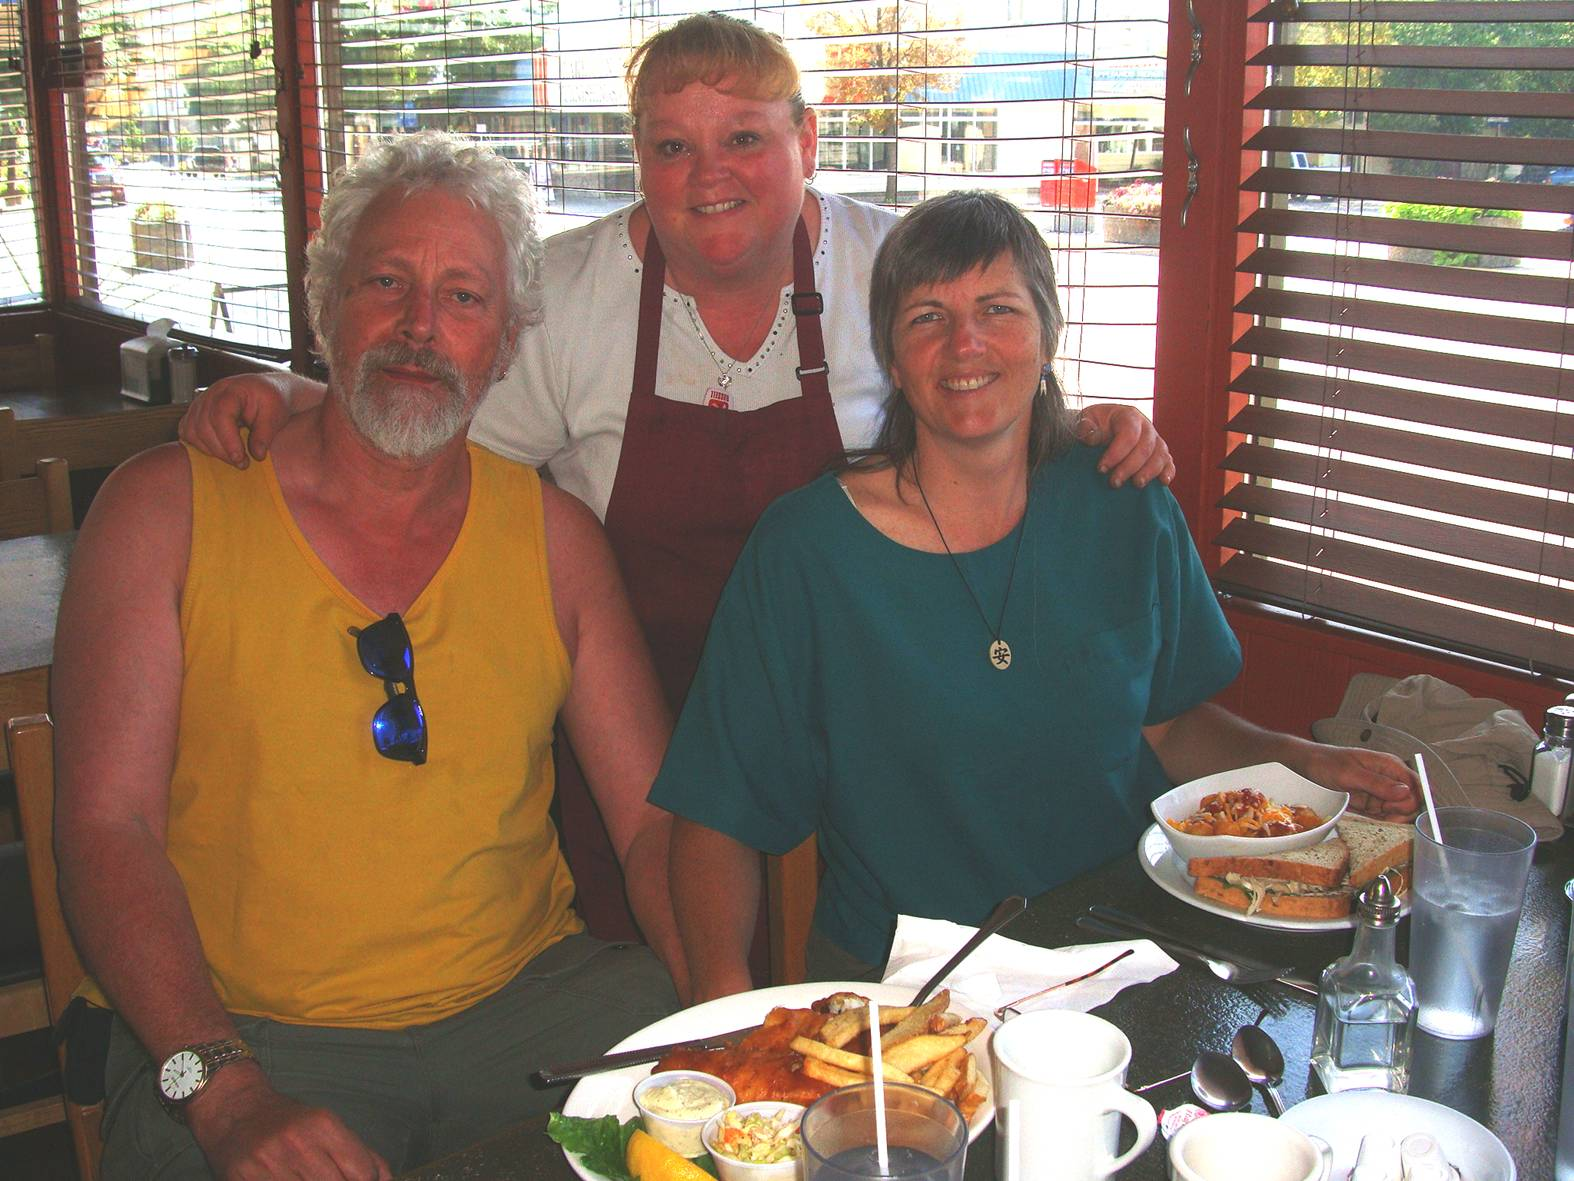 pictire: Karen, owner of Karen's Restaurant in Williams Lake, stopped by our table.  We lavished praise on the food.